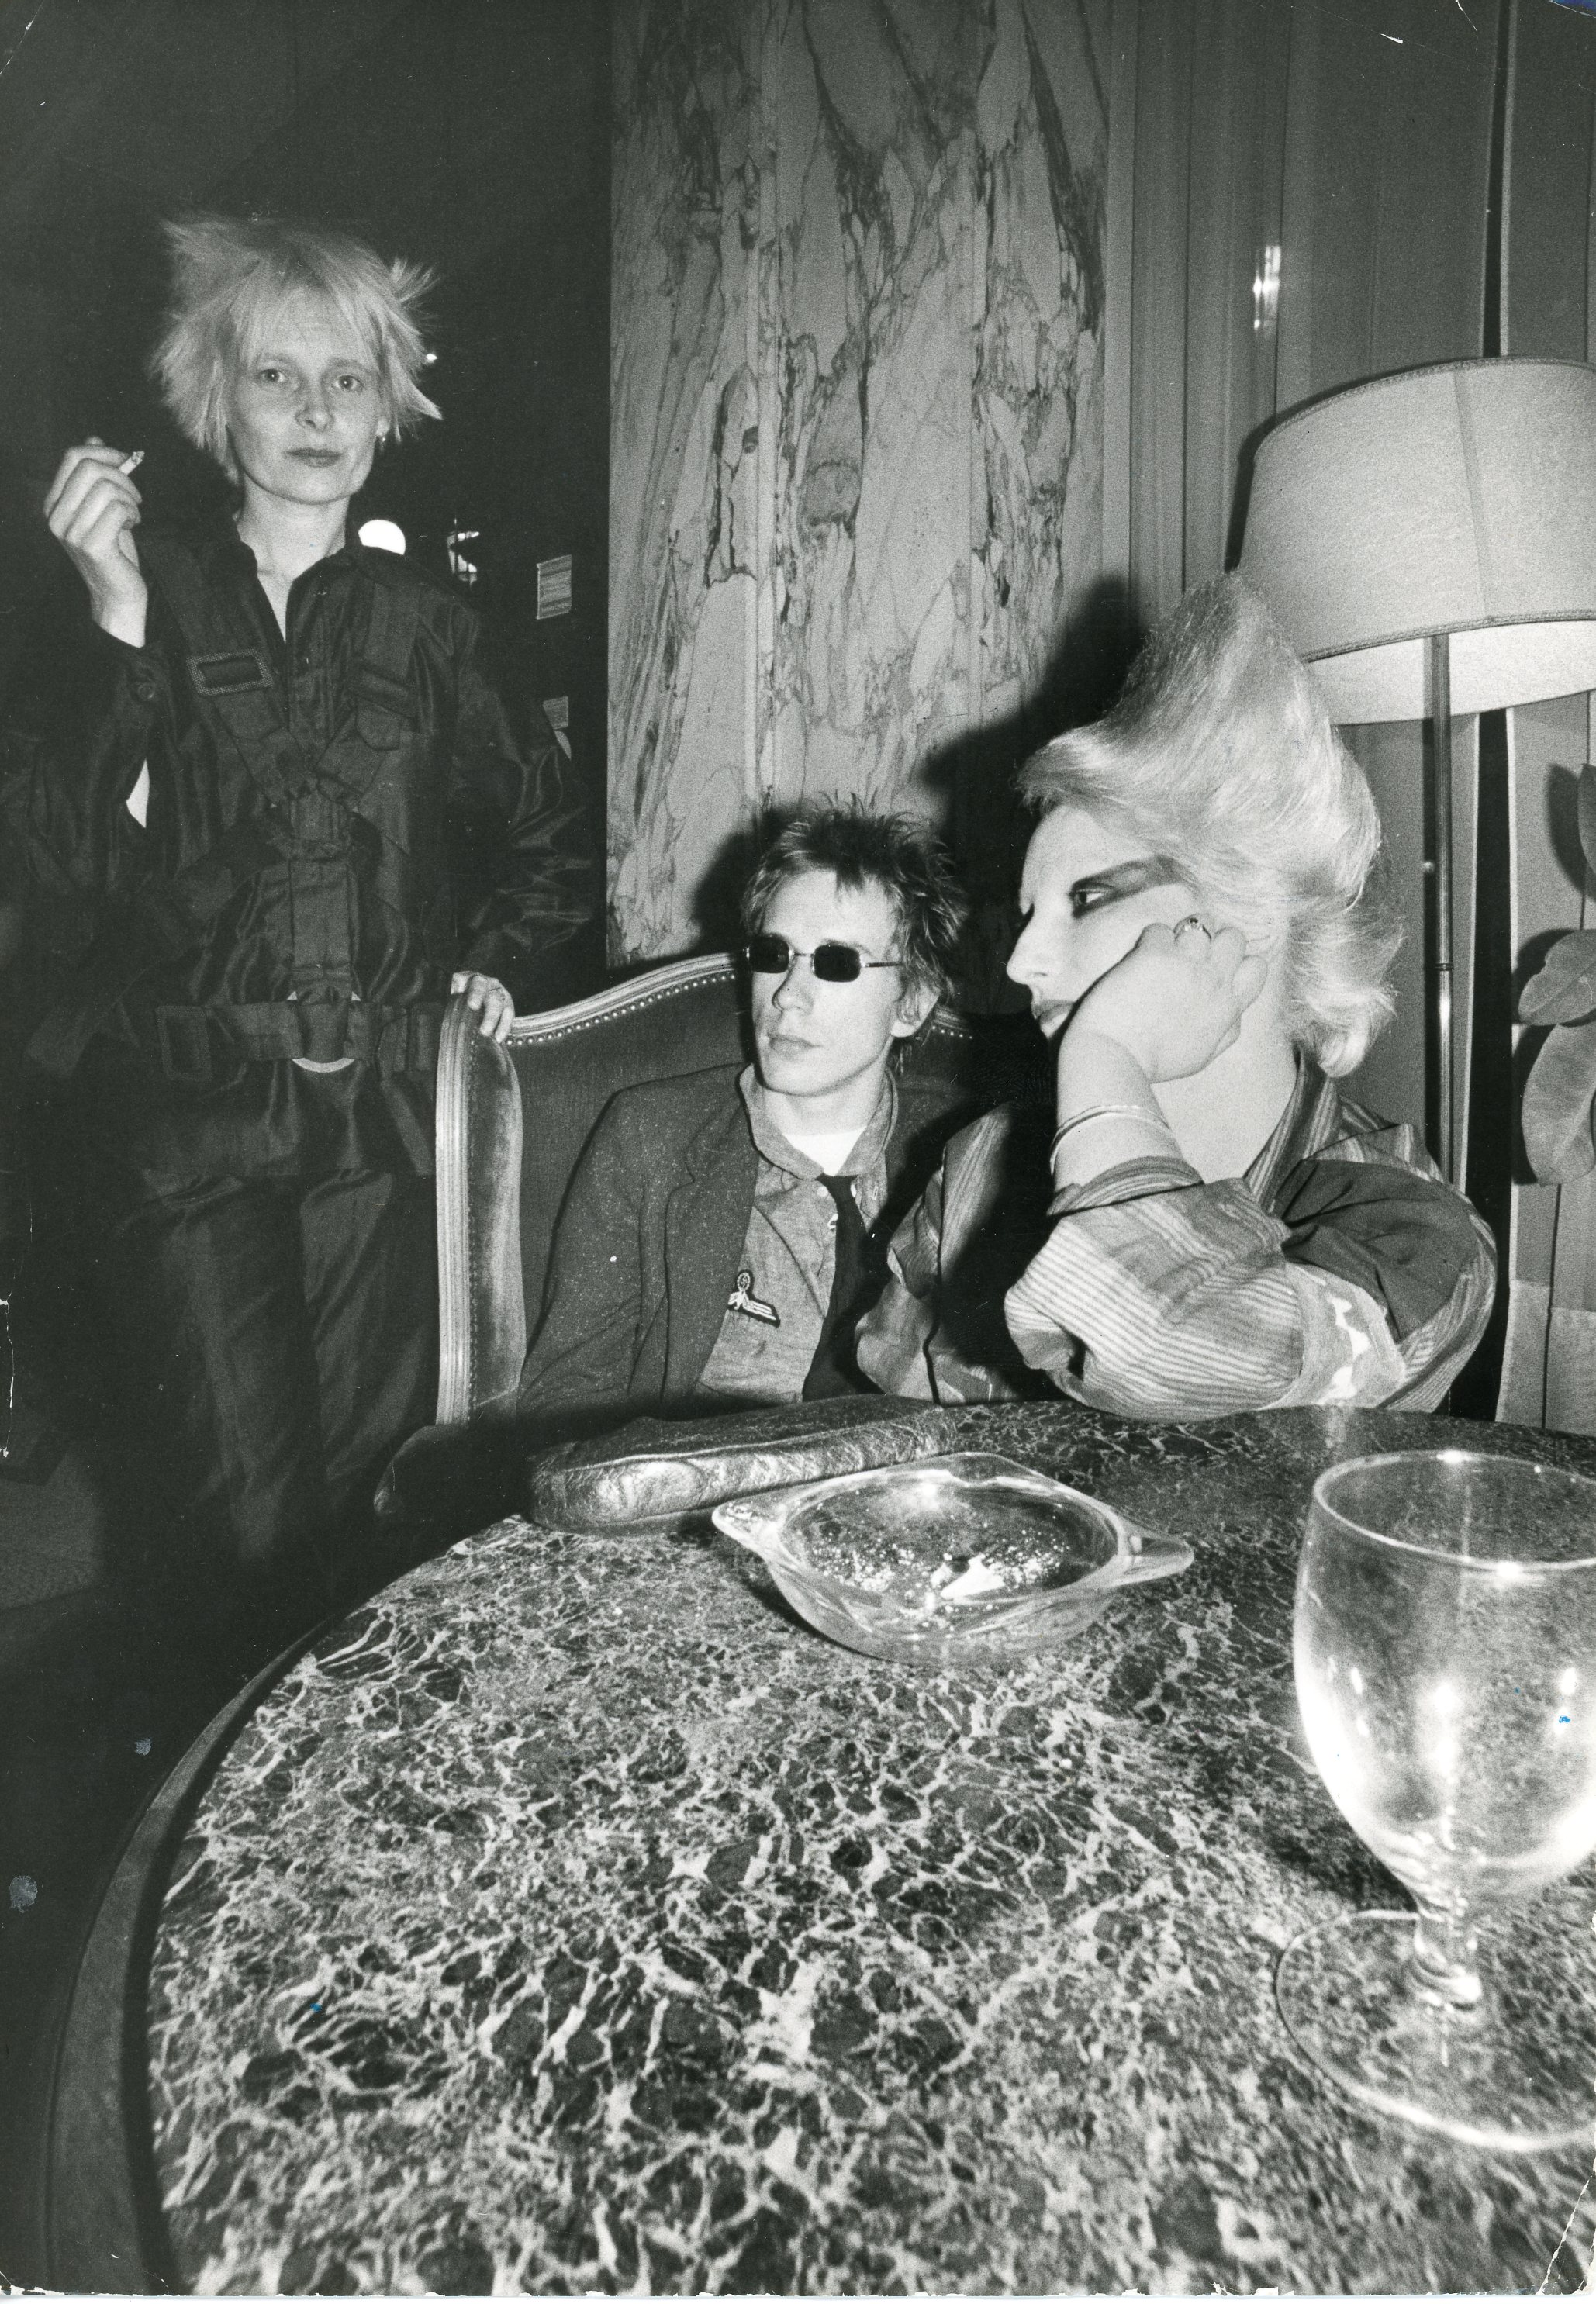 Vivienne Westwood, Johnny Rotten, and Jordan 1970s © Ray Stevenson. Courtesy of Rex Shutterstock.